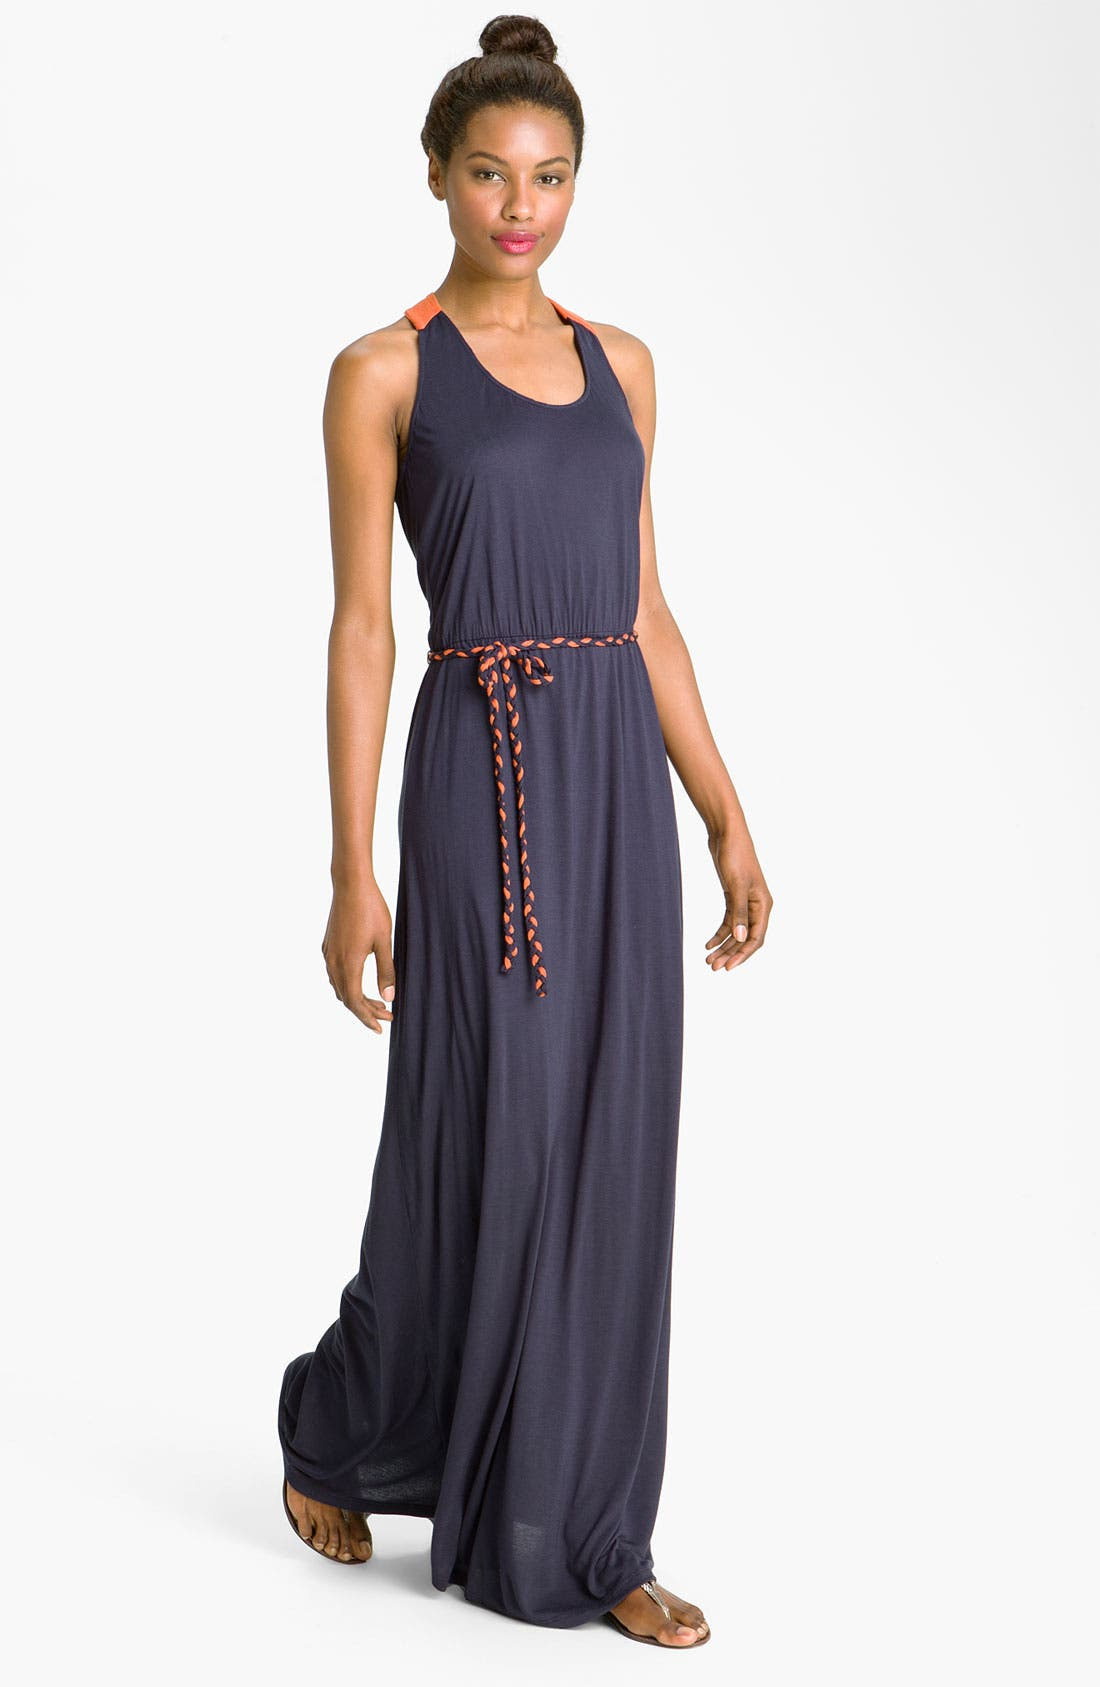 Alternate Image 1 Selected - Max & Mia Contrast Trim Maxi Dress